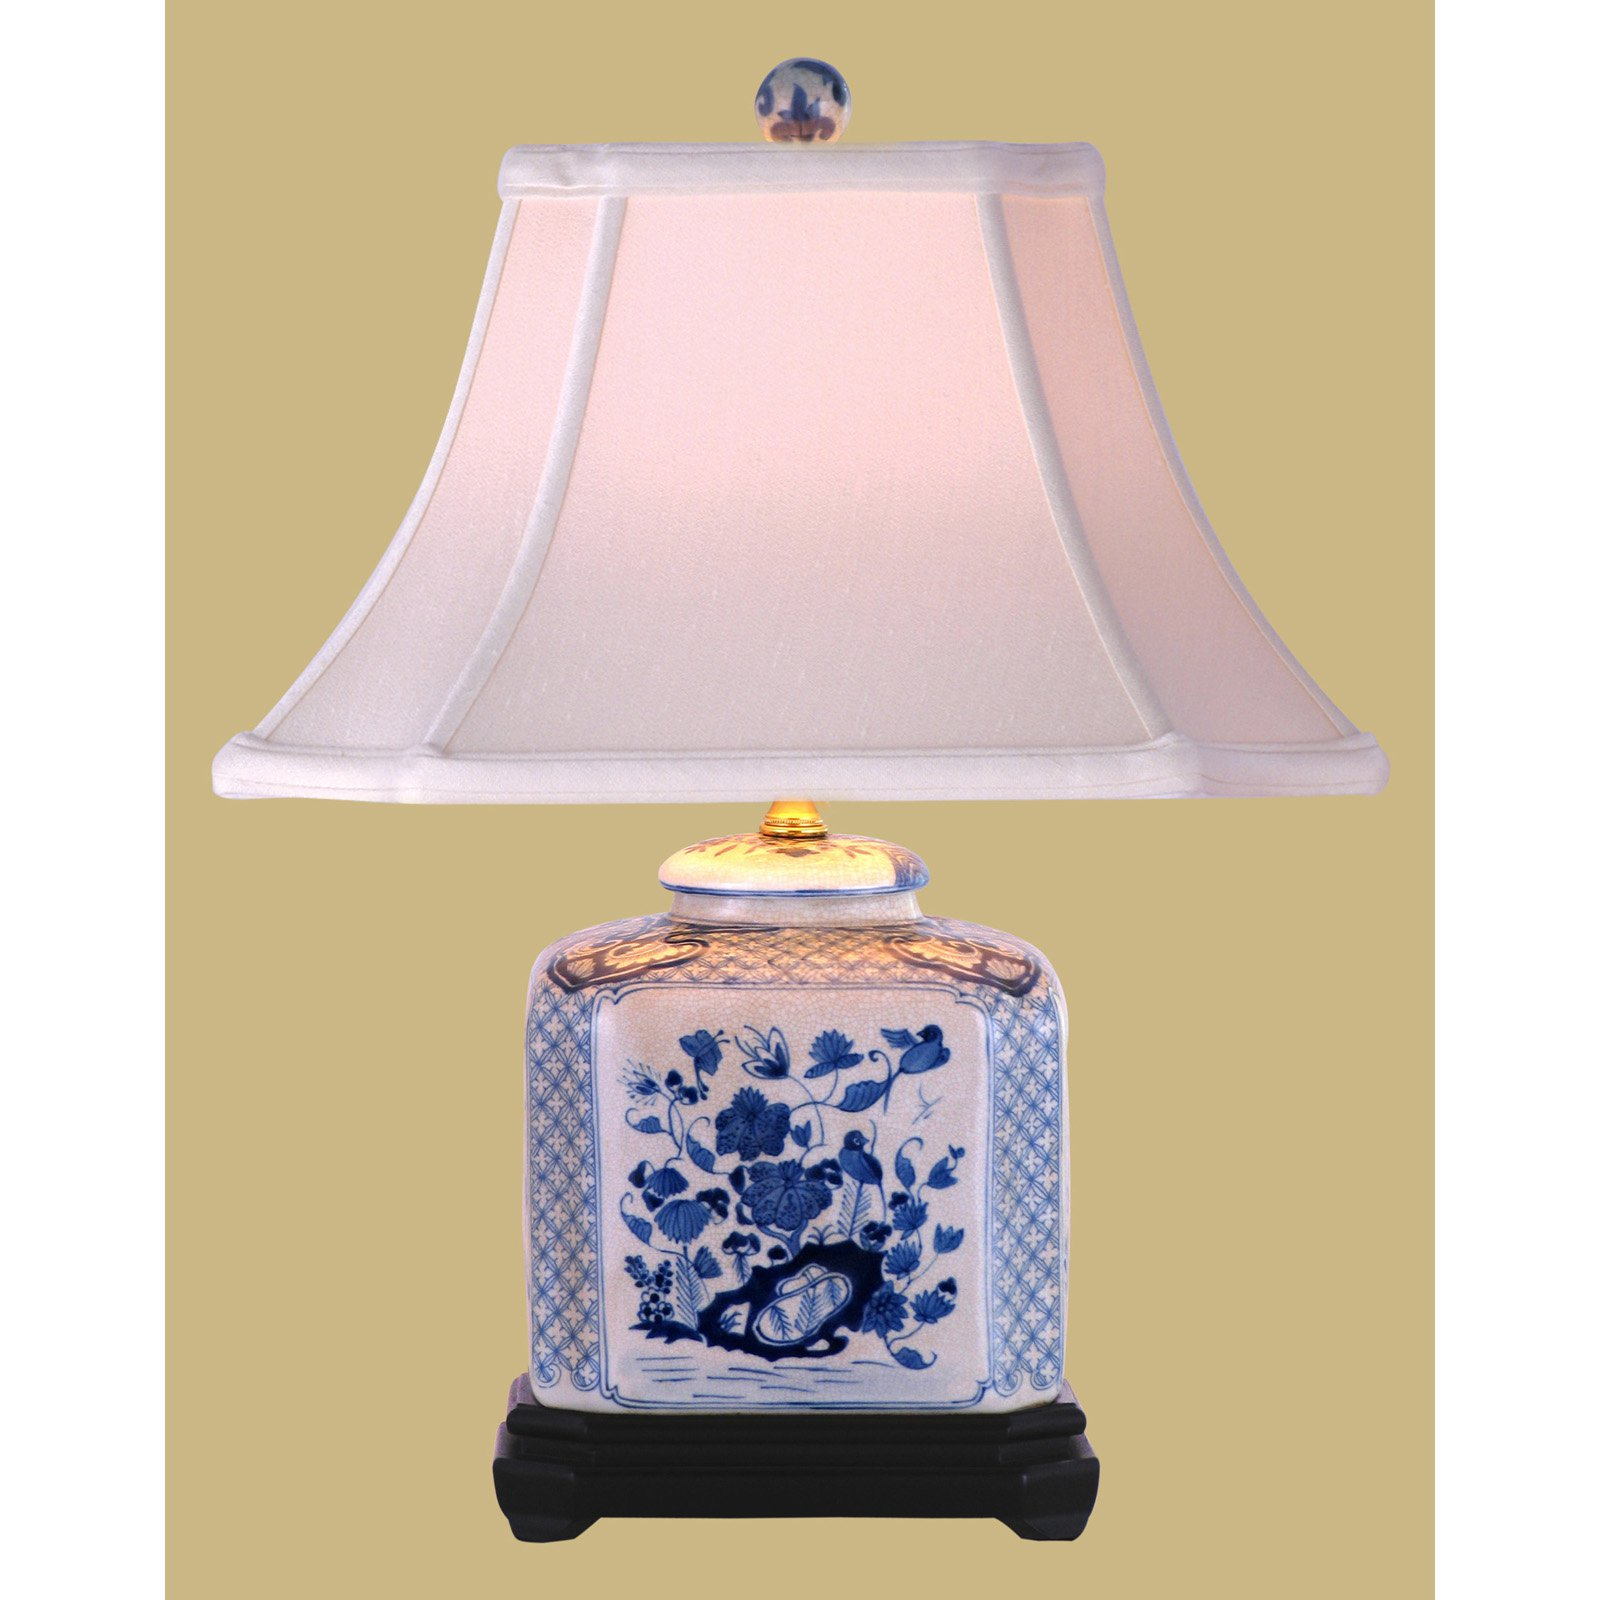 East Enterprises LPDBWN087A Jar Table Lamp - Blue and White